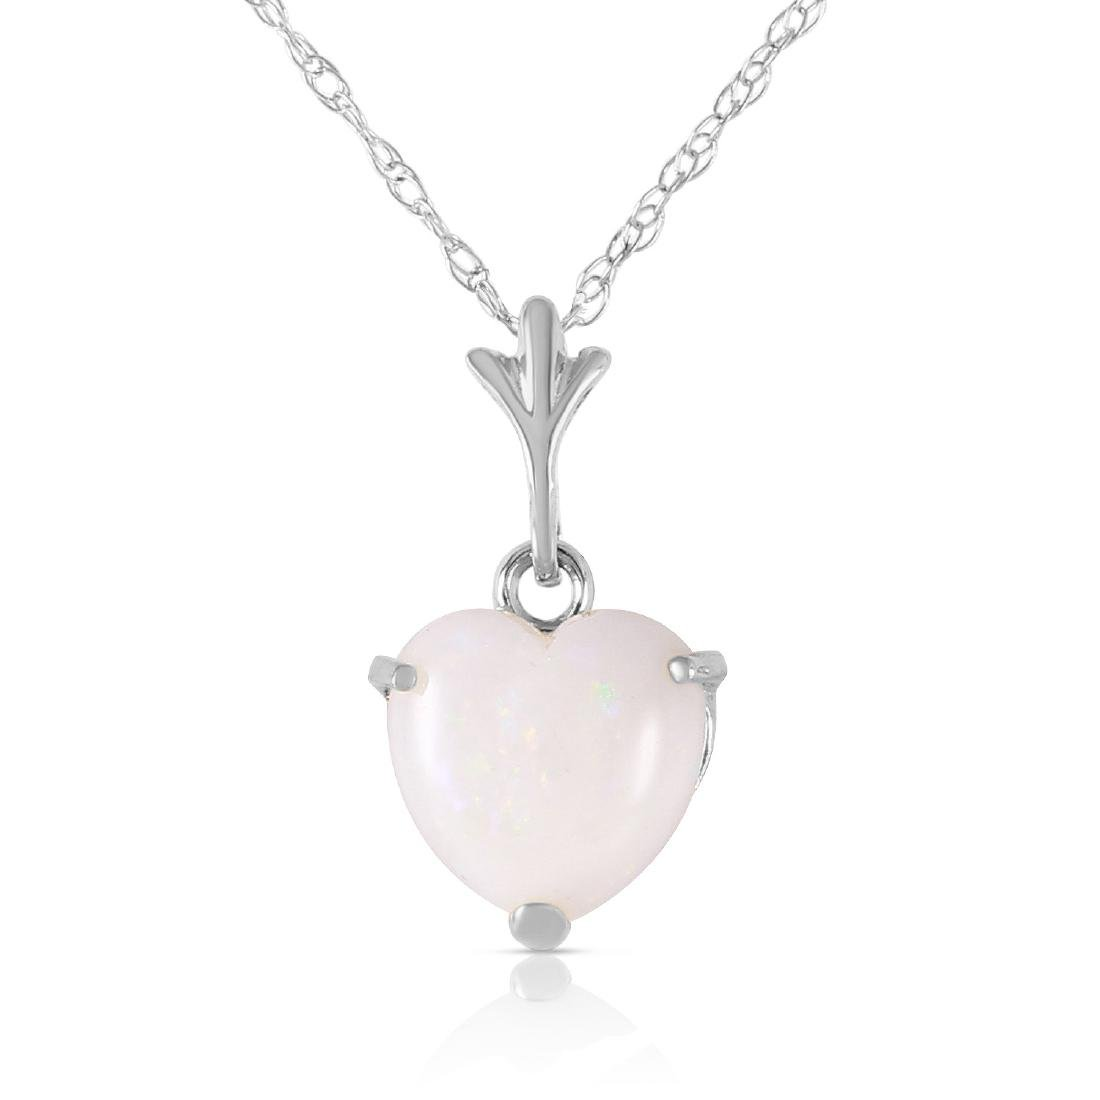 Genuine 0.65 ctw Opal Necklace Jewelry 14KT White Gold